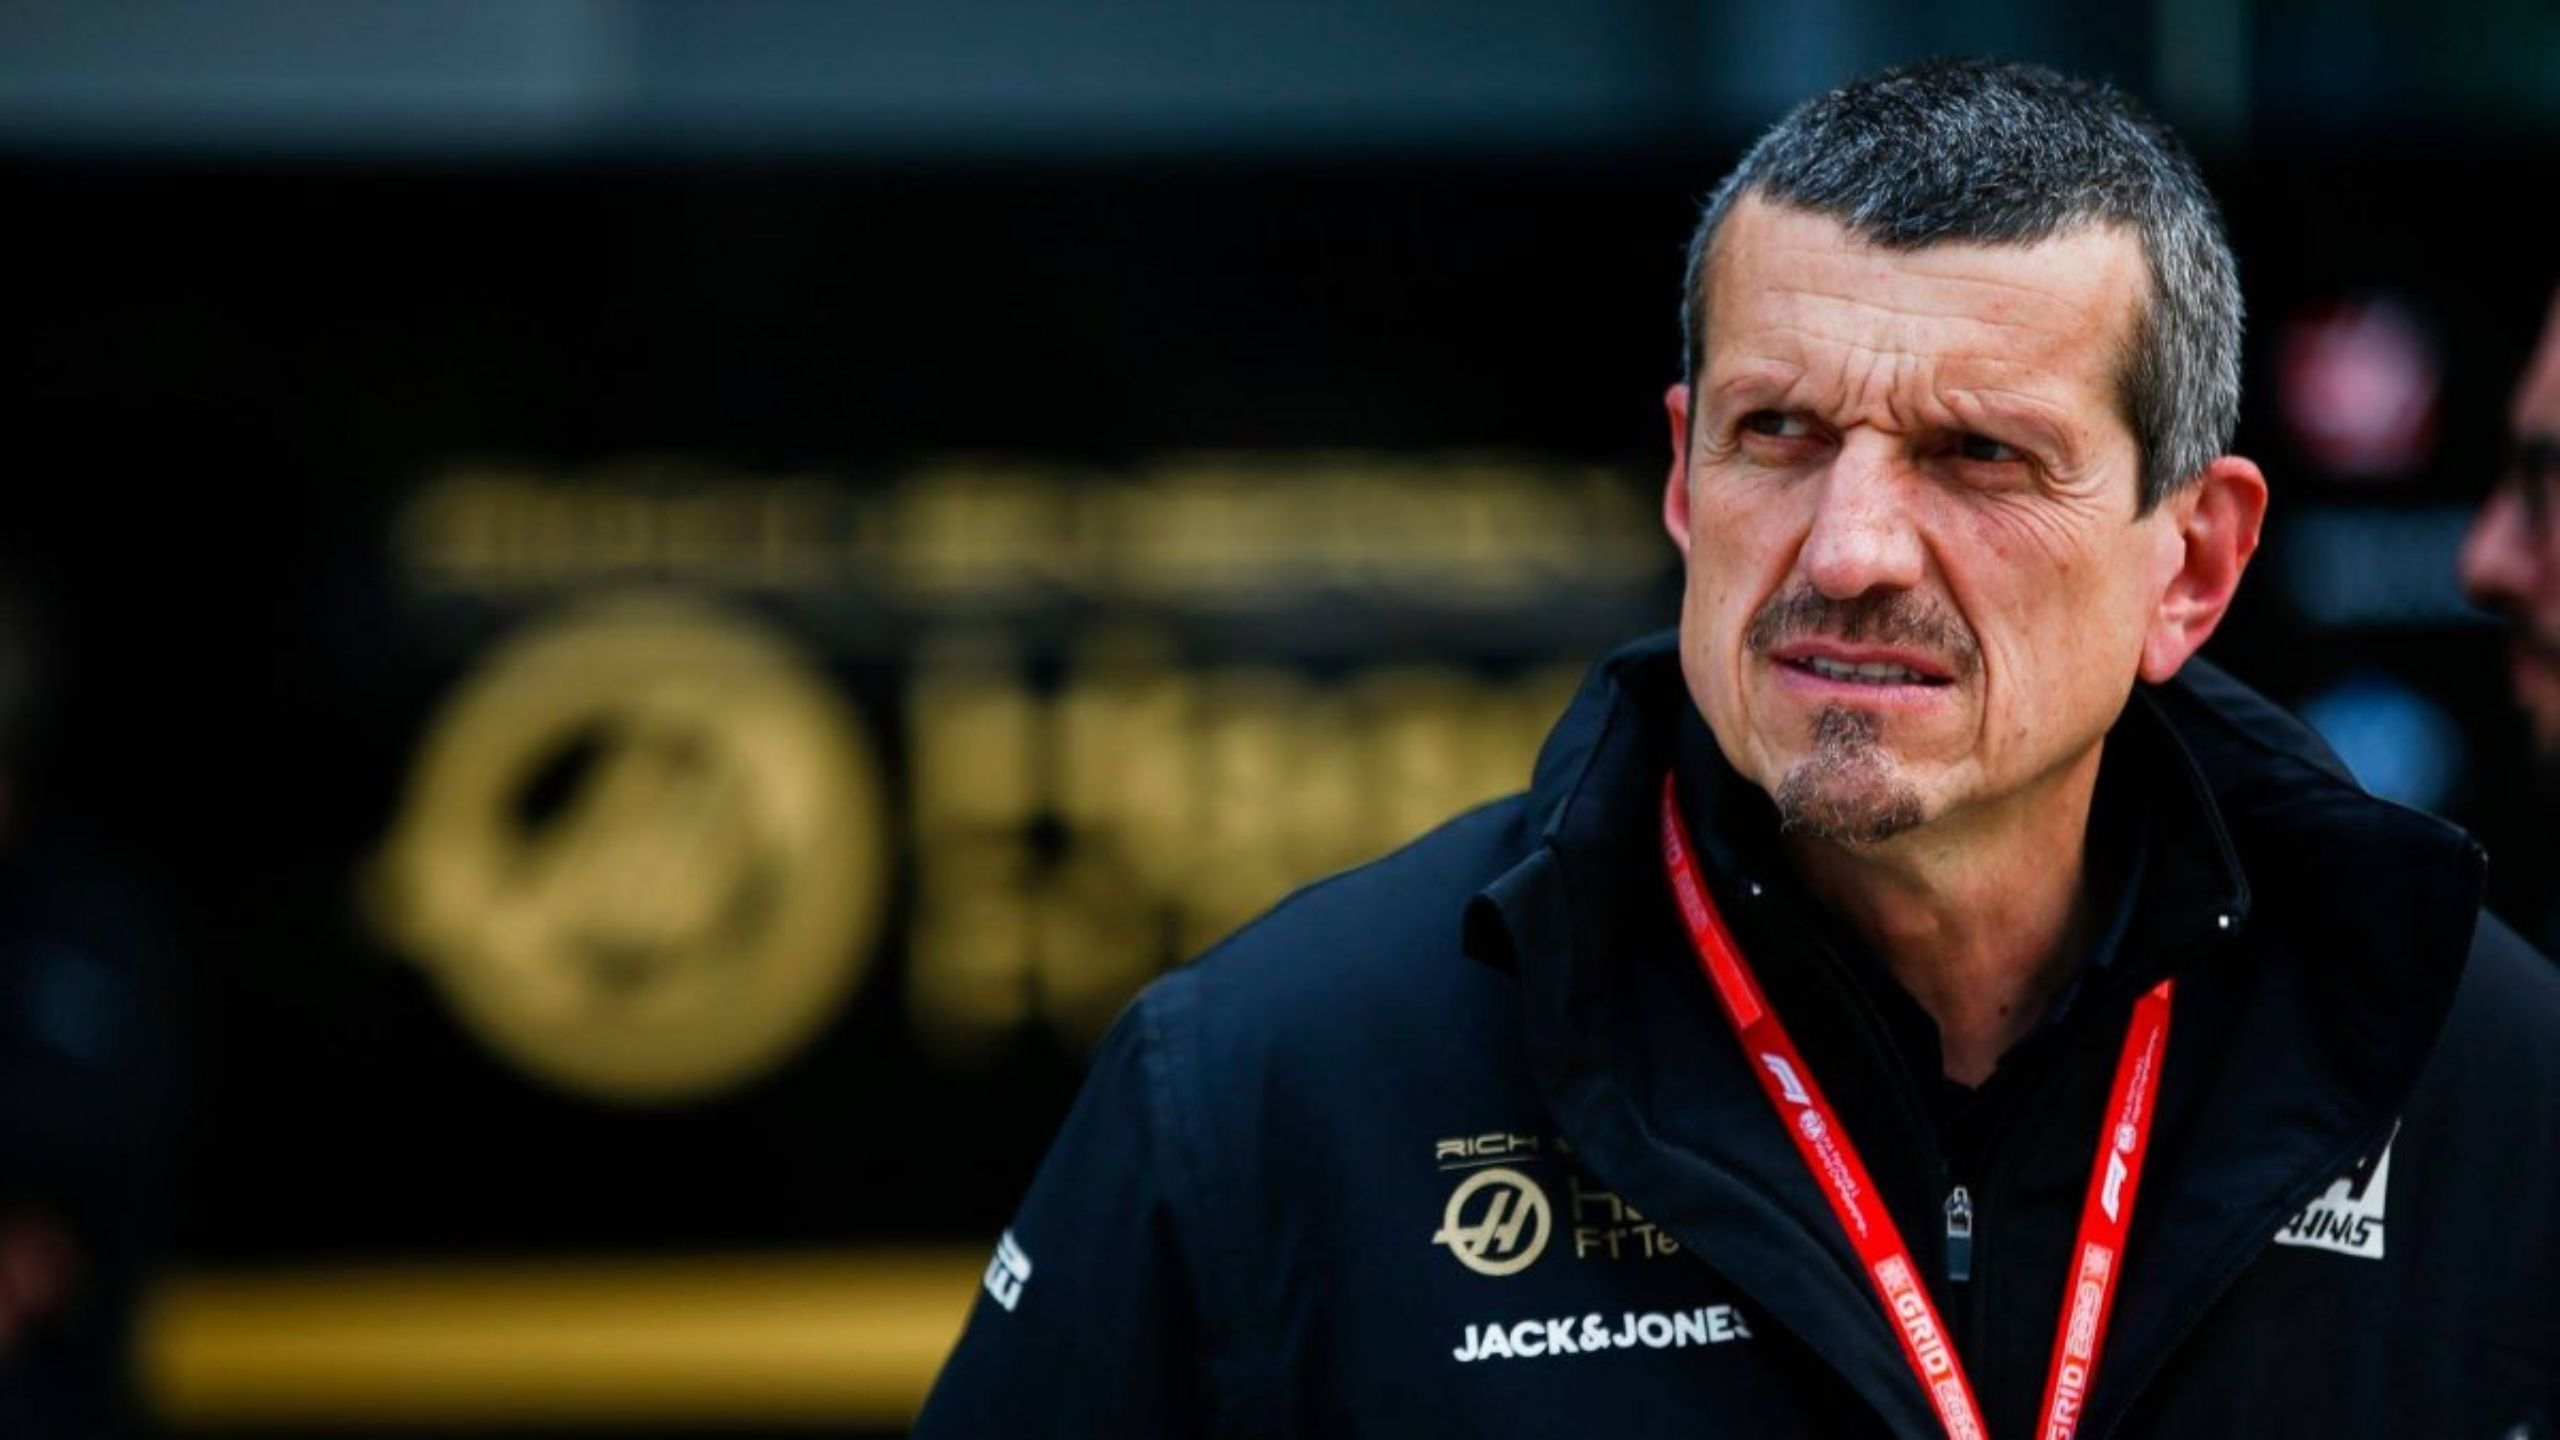 """There are a lot of people knocking on the door for these jobs"" - Haas F1 boss Guenther Steiner believes F1 budget cap will cut jobs"